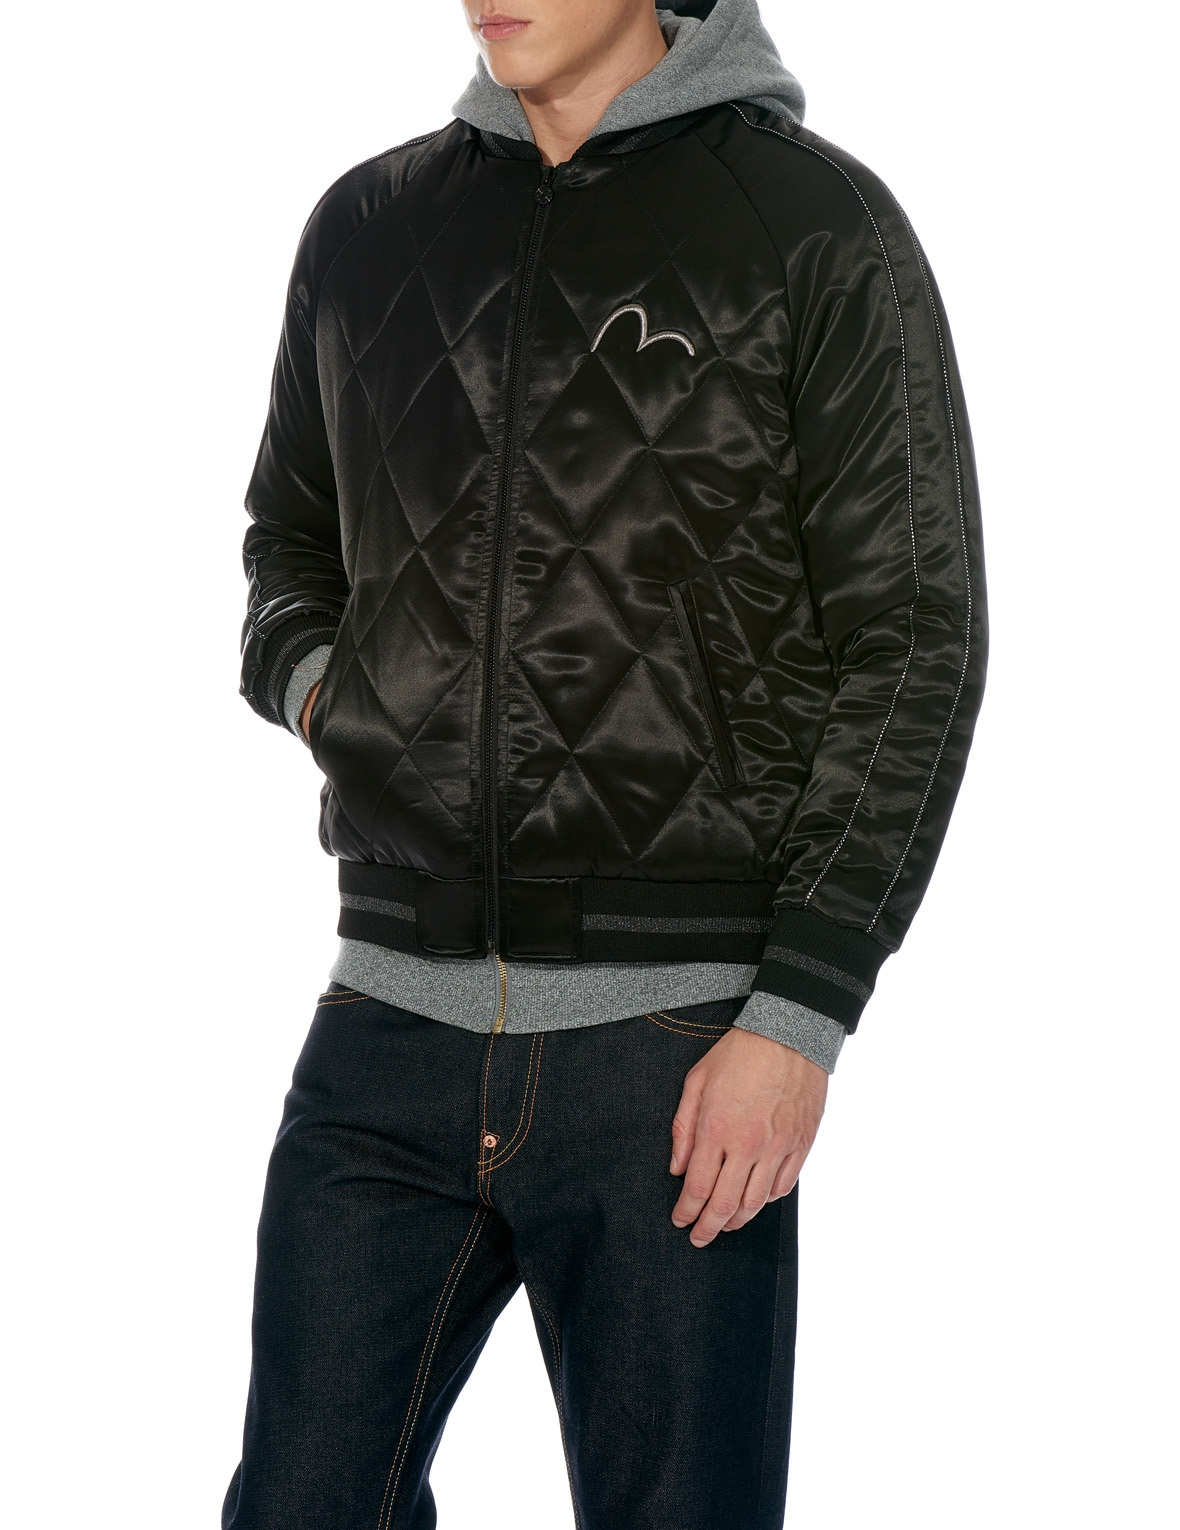 EVISU QUILTED SOUVENIR JACKET WITH EMBROIDERY